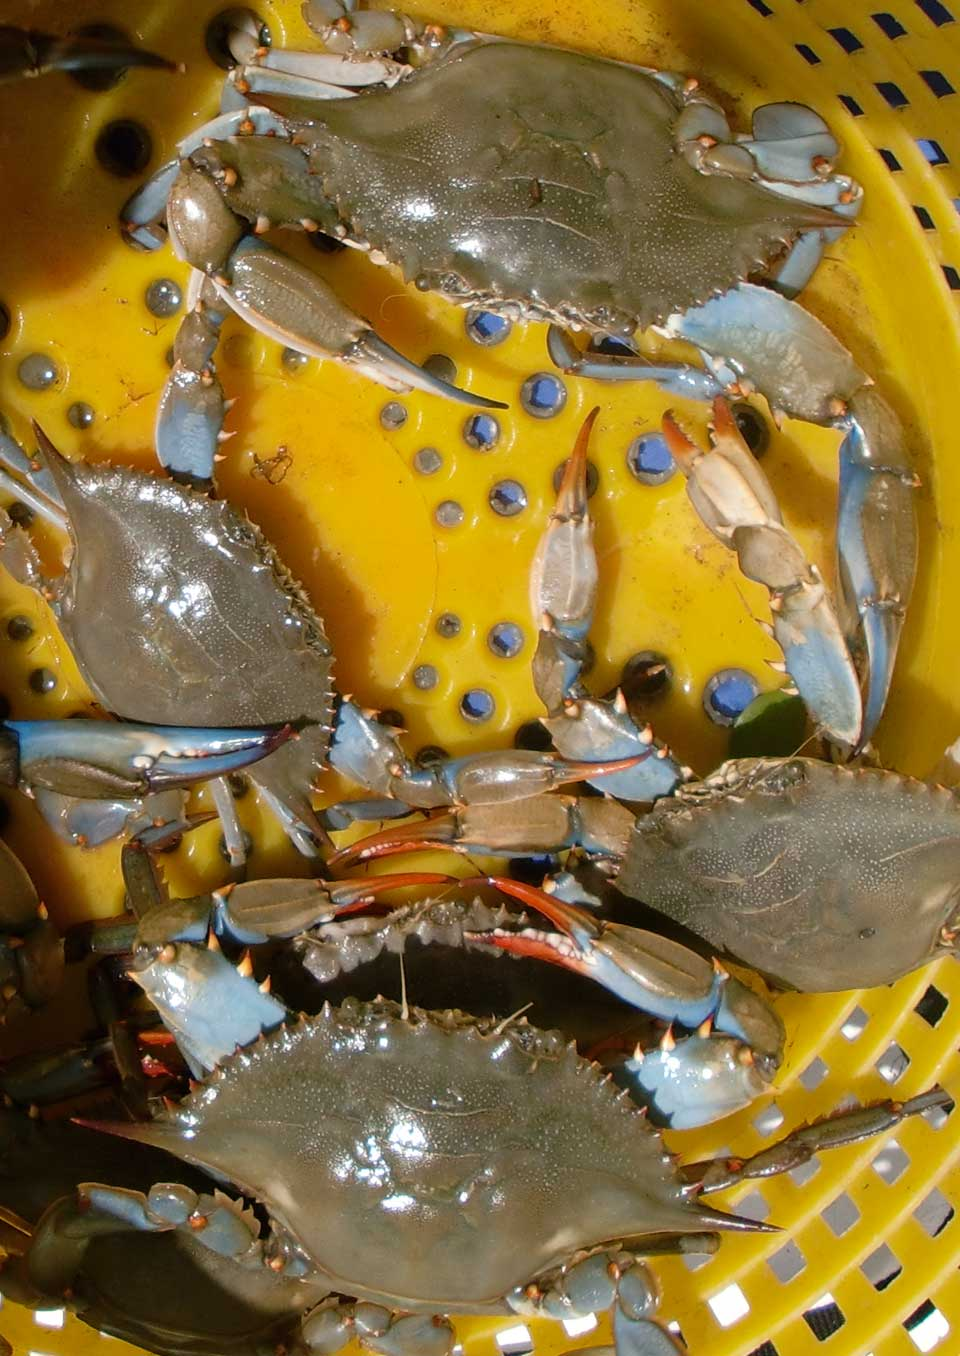 Obx fishing outer banks blue crabs for Blue crab fishing